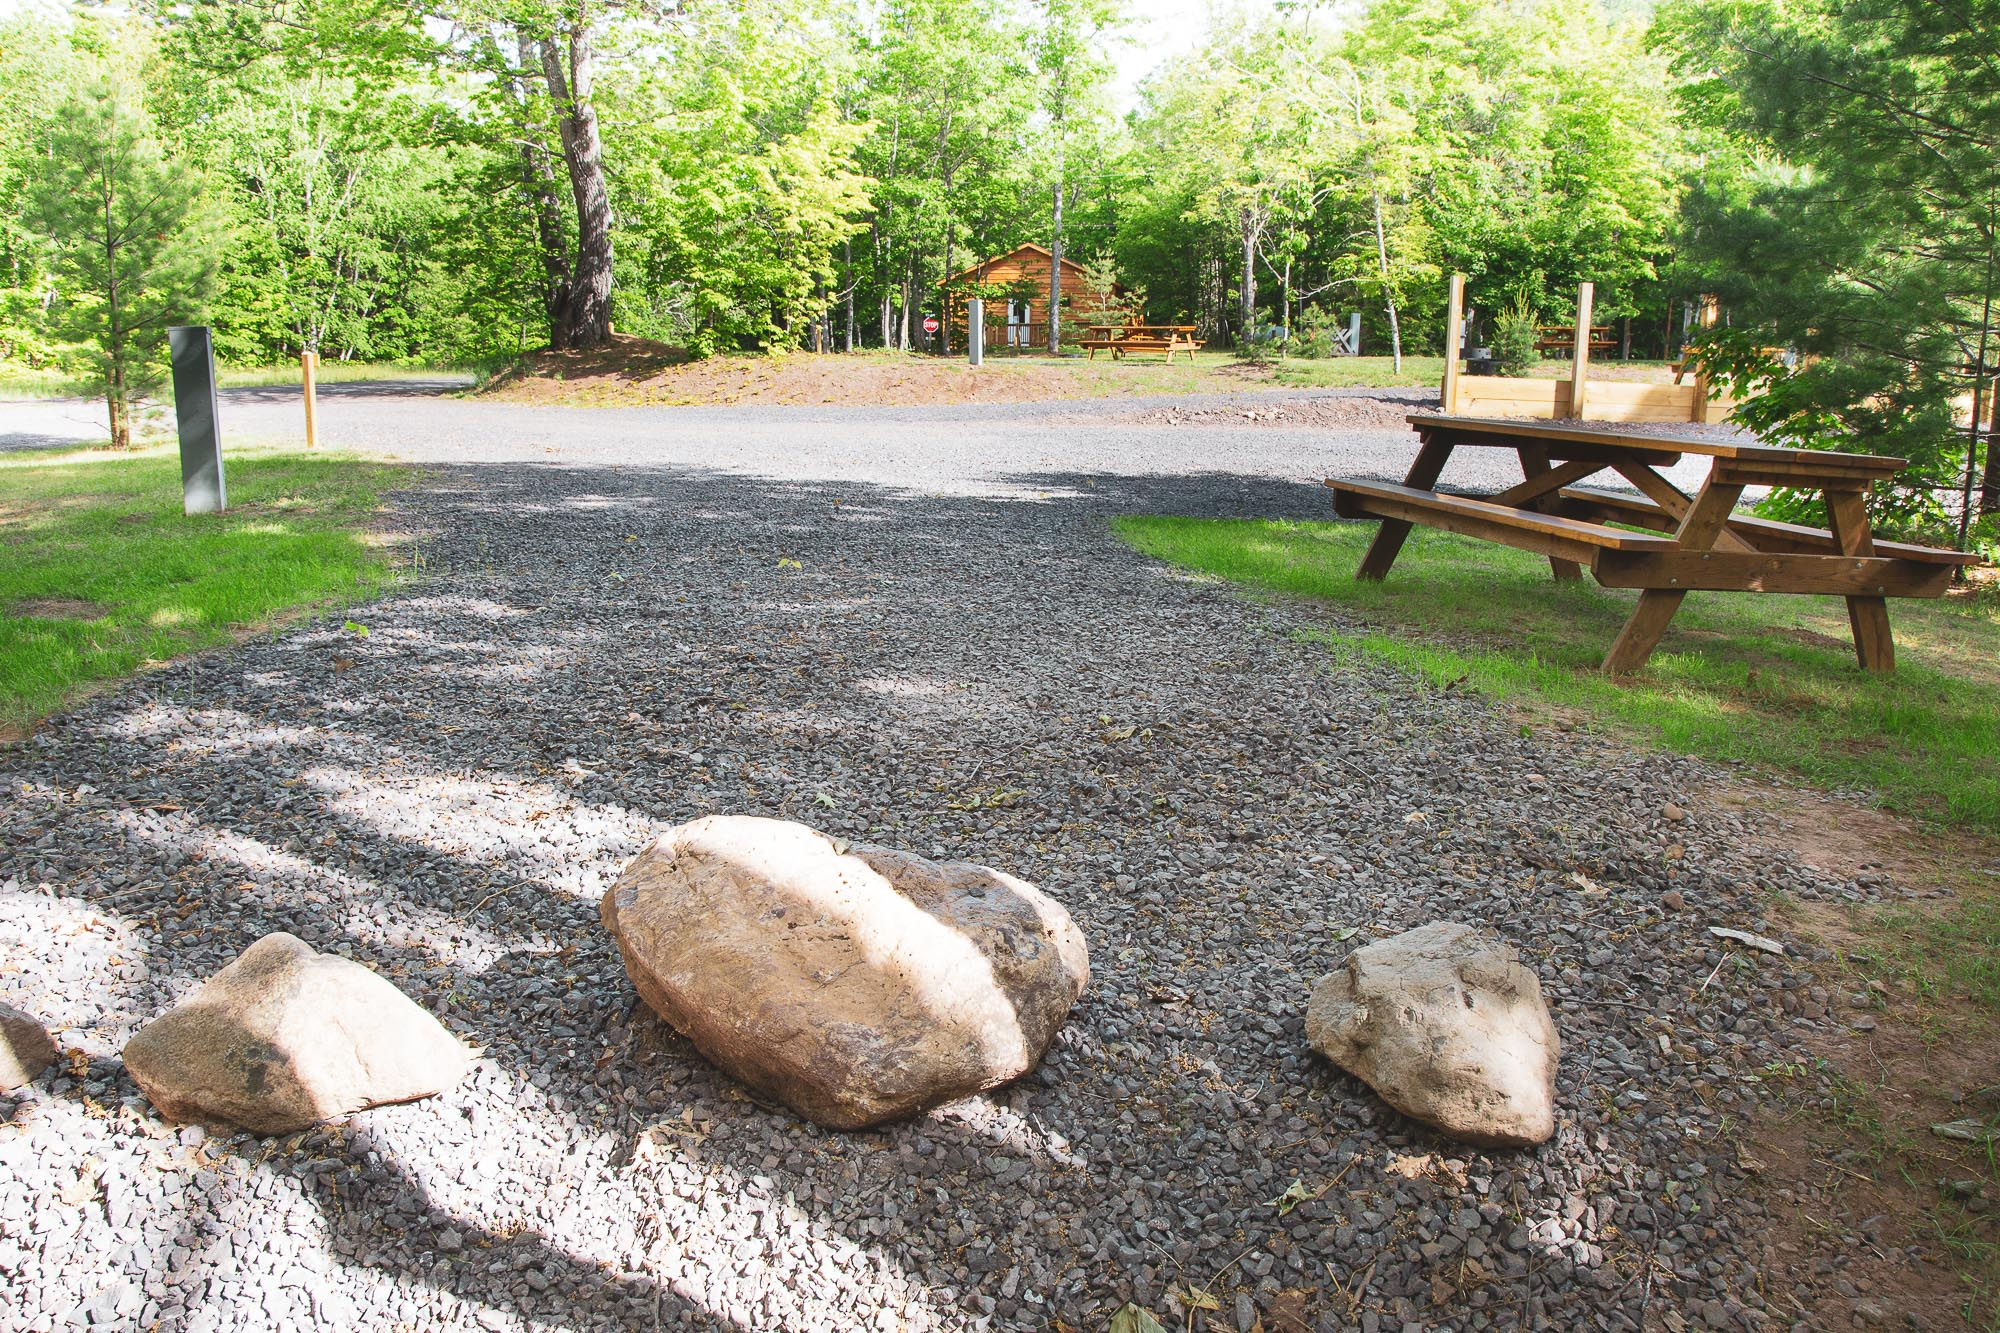 Photo of Campground Site 12 at the Wilderness Resort in Lac La Belle Michigan